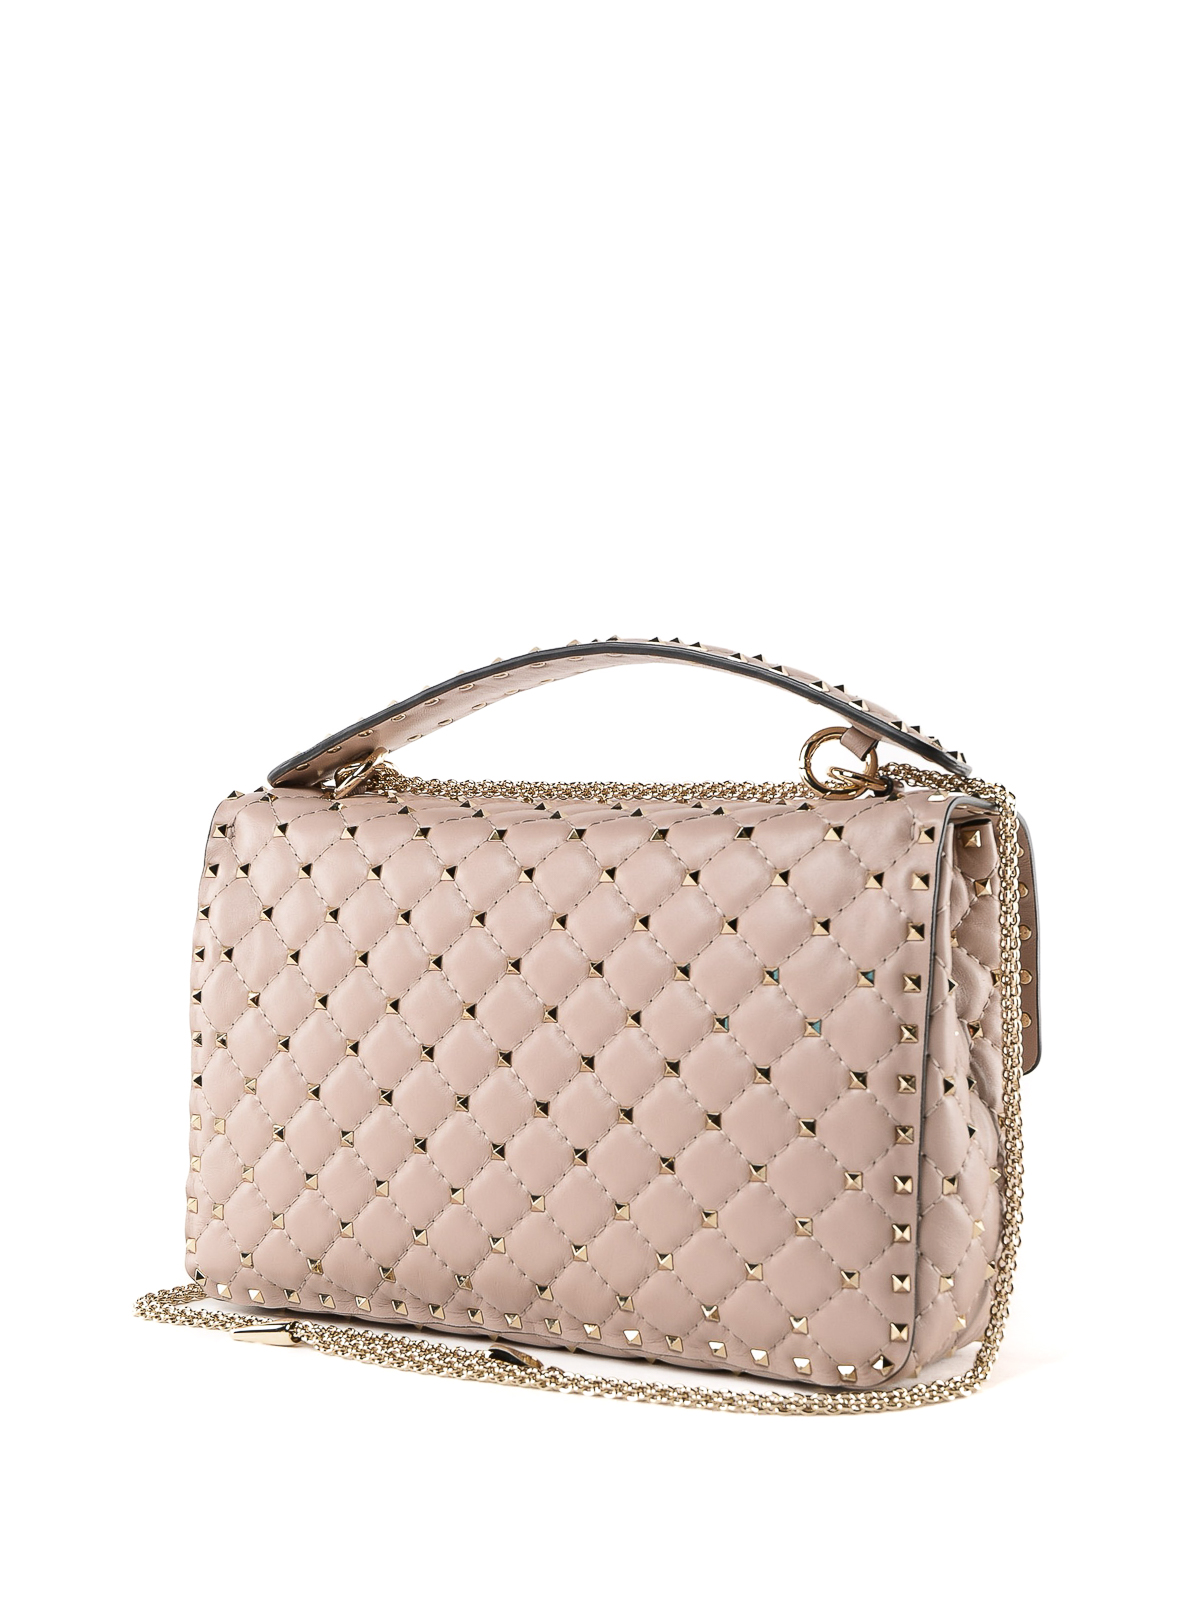 2d80907485 iKRIX VALENTINO GARAVANI: shoulder bags - Rockstud Spike powder lambskin  shoulder bag